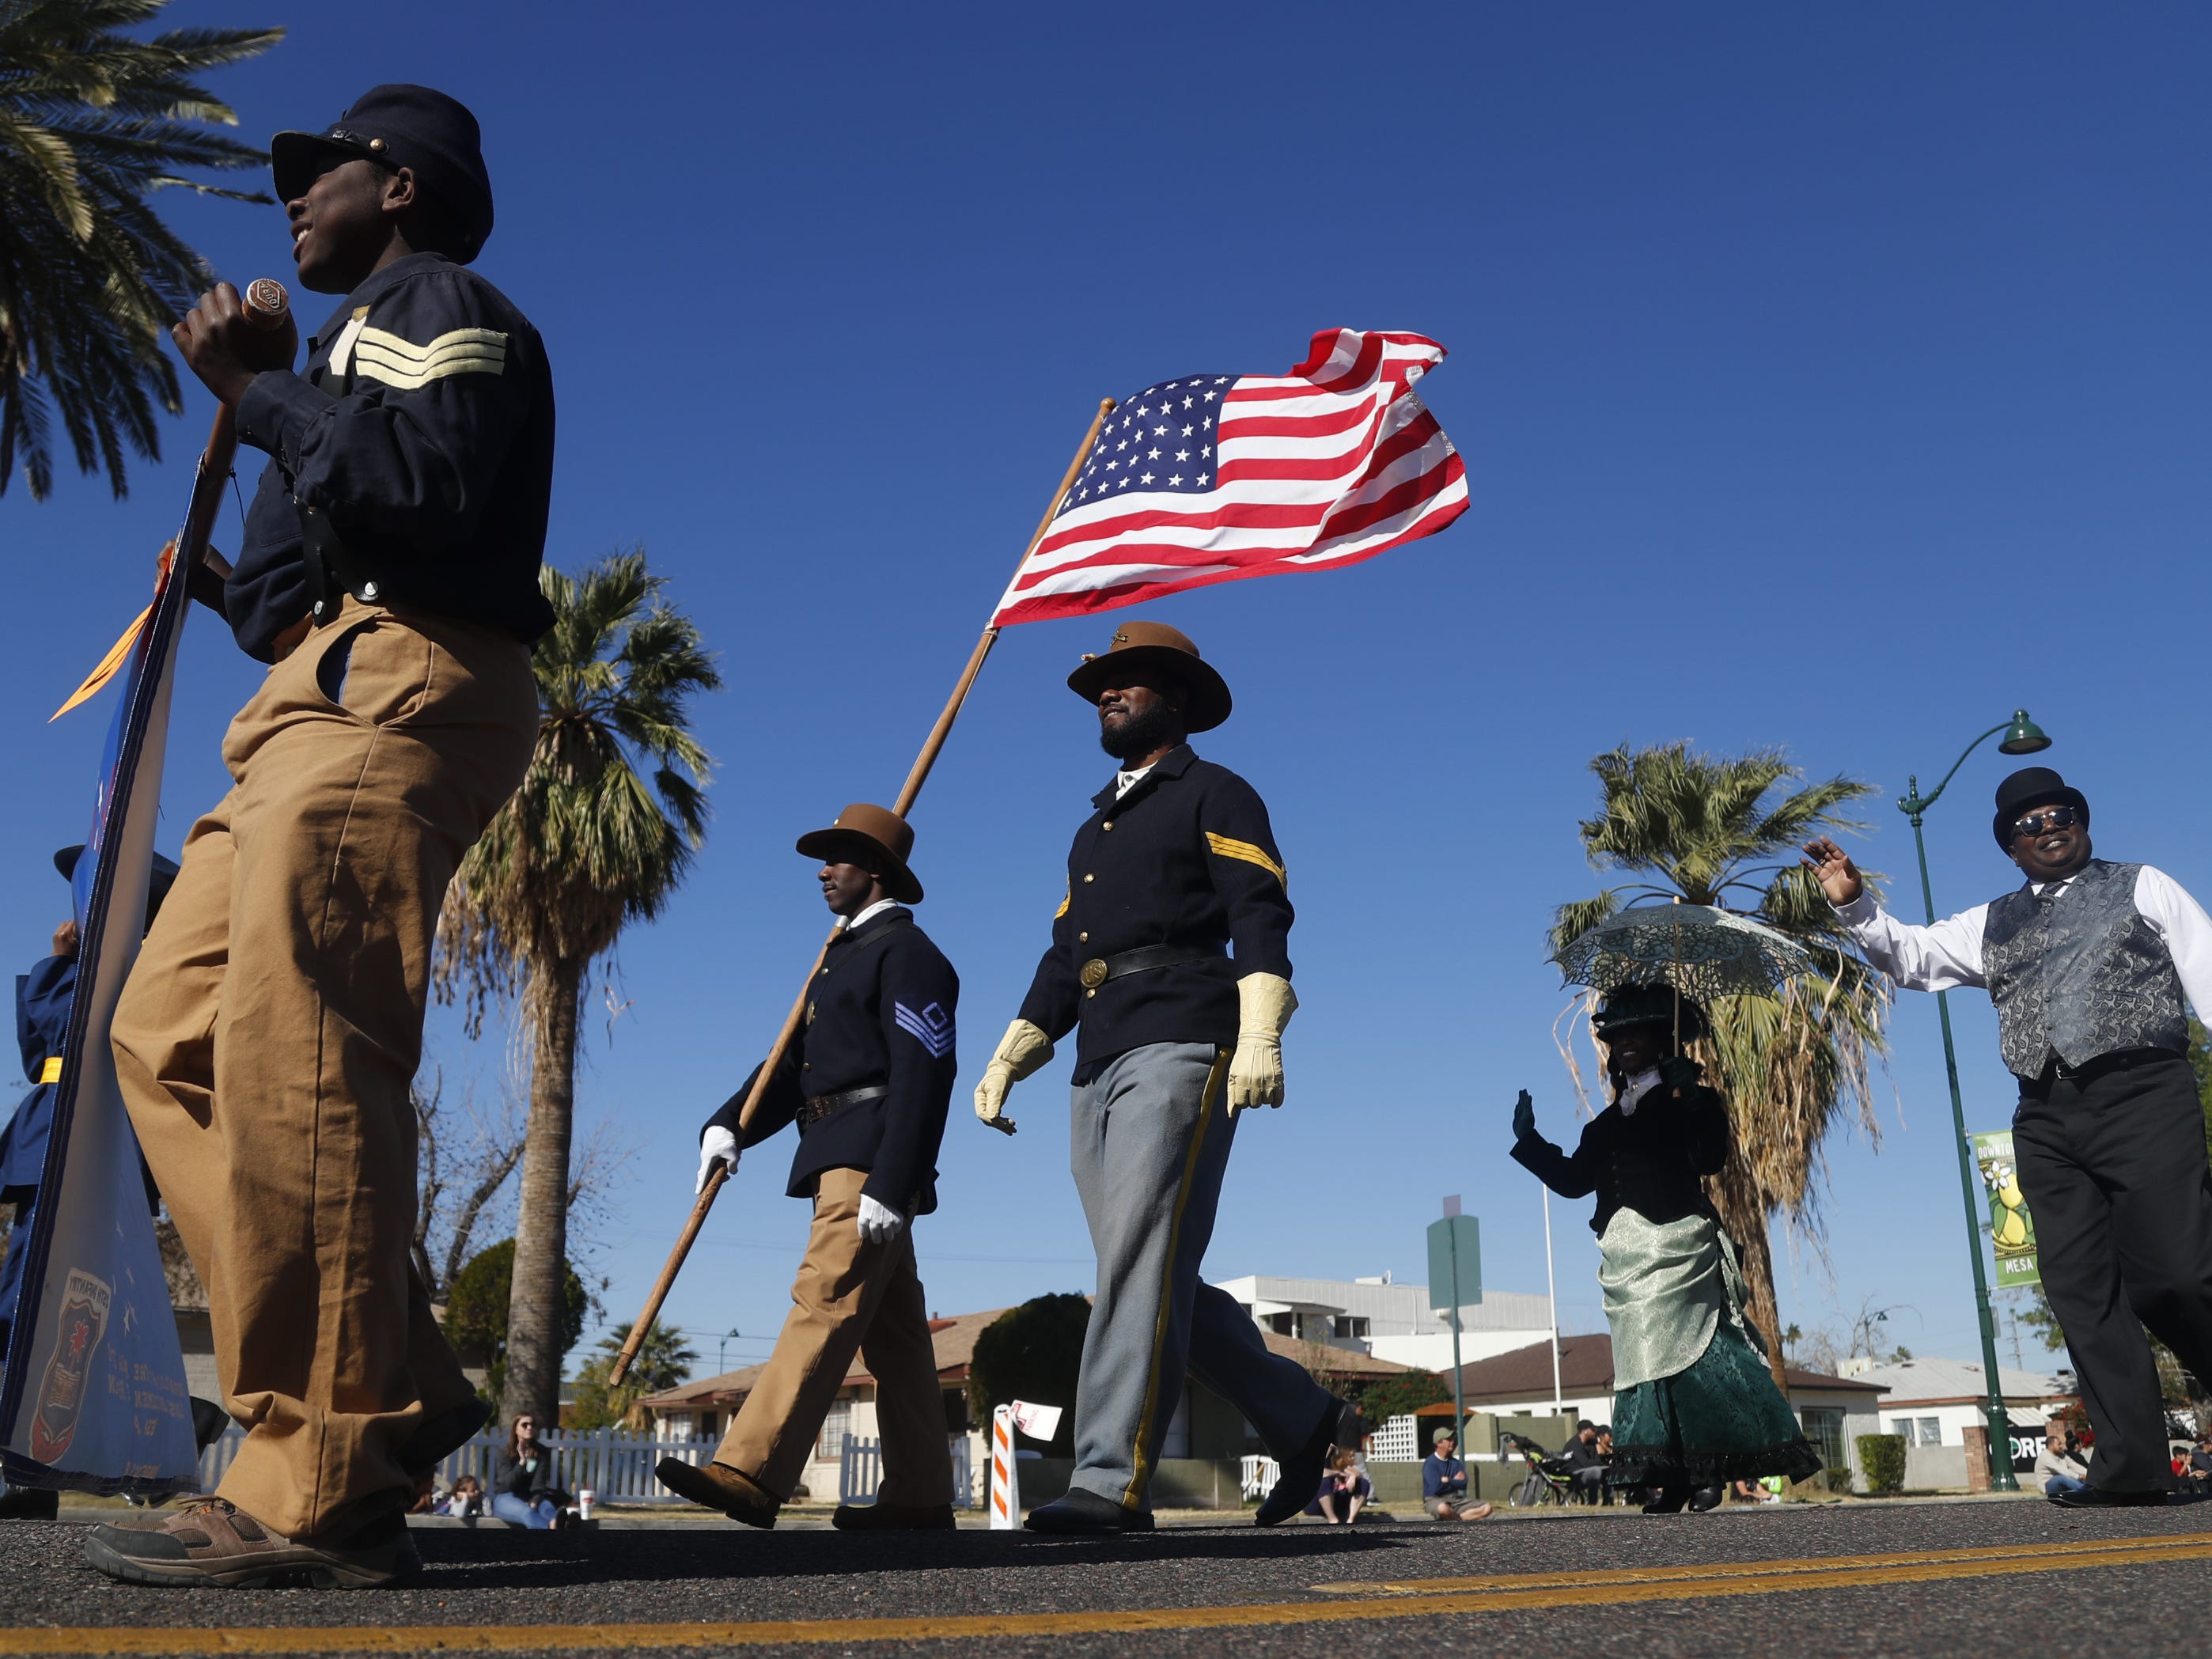 Buffalo Soldiers of Arizona come down the parade route during the MLK Day Parade in Mesa, Ariz. on January 21, 2019.